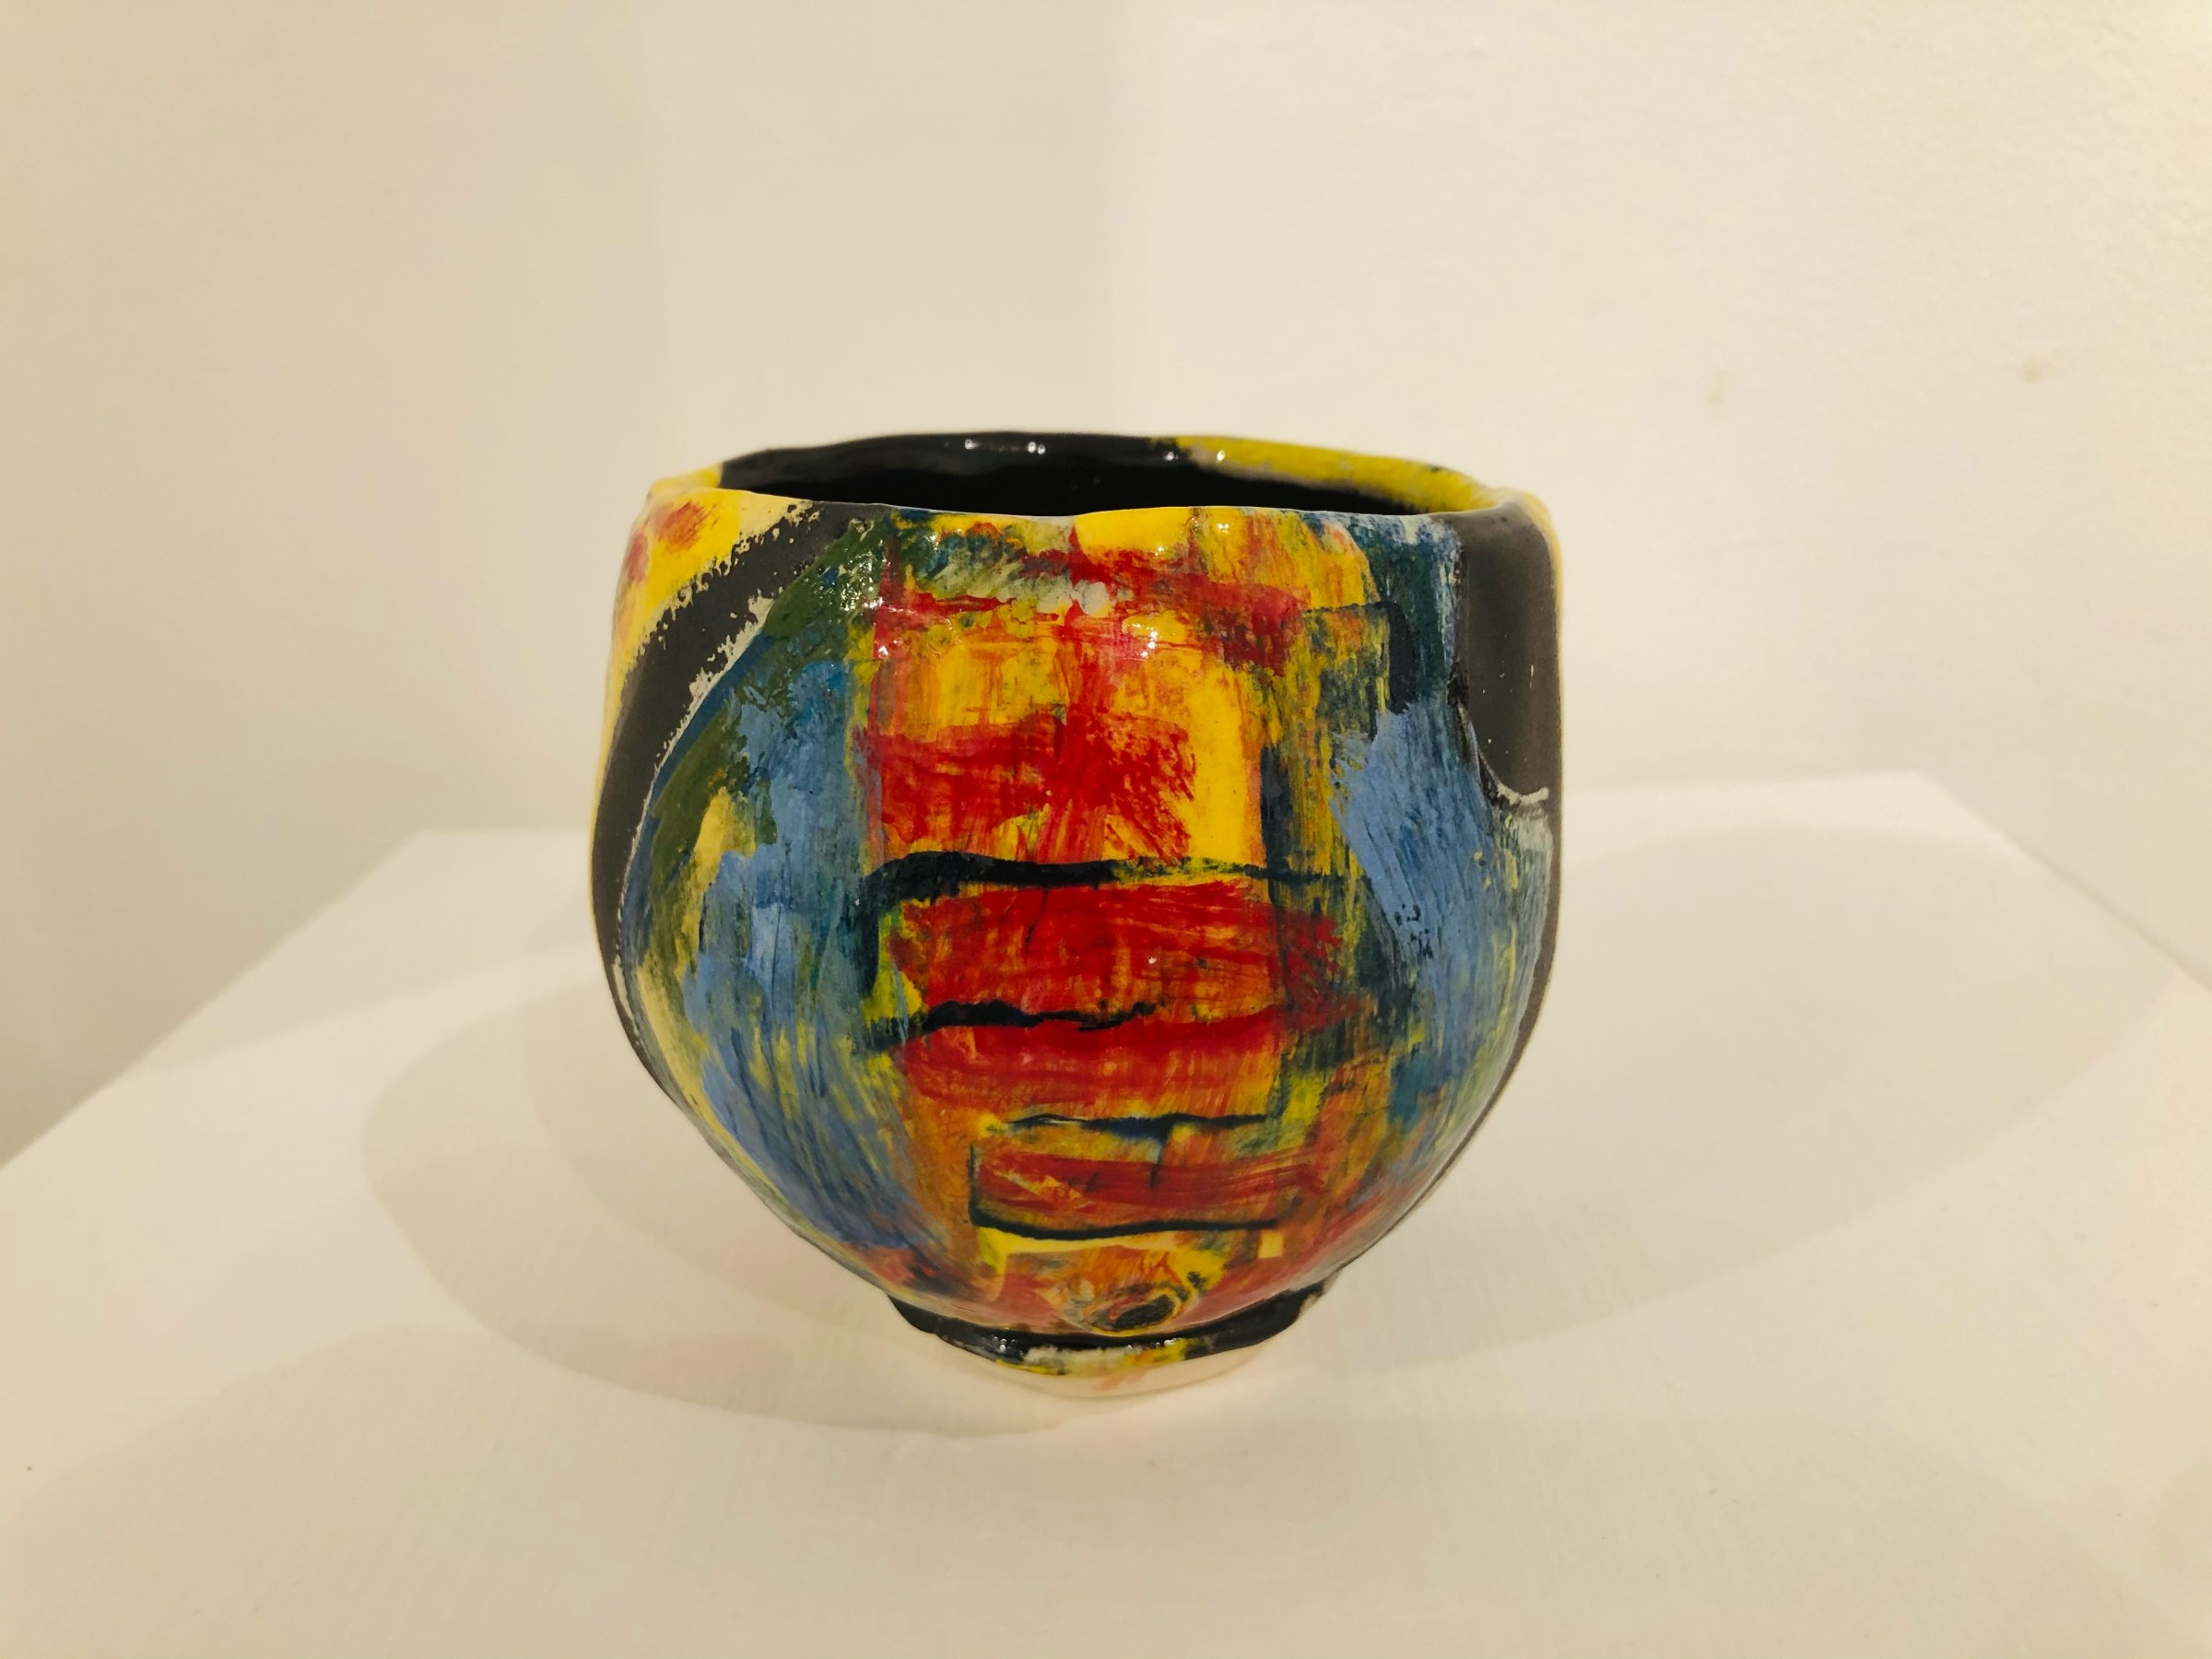 "<span class=""link fancybox-details-link""><a href=""/artists/100-john-pollex/works/7420-john-pollex-tea-bowl-hand-built-2020/"">View Detail Page</a></span><div class=""artist""><strong>John Pollex</strong></div> <div class=""title""><em>Tea bowl (hand built)</em>, 2020</div> <div class=""signed_and_dated"">impressed with the artist's seal mark 'JP'</div> <div class=""medium"">white earthenware decorated with coloured slips</div> <div class=""dimensions"">height. 9 cm x diameter. 10 cm</div><div class=""price"">£88.00</div><div class=""copyright_line"">Copyright The Artist</div>"